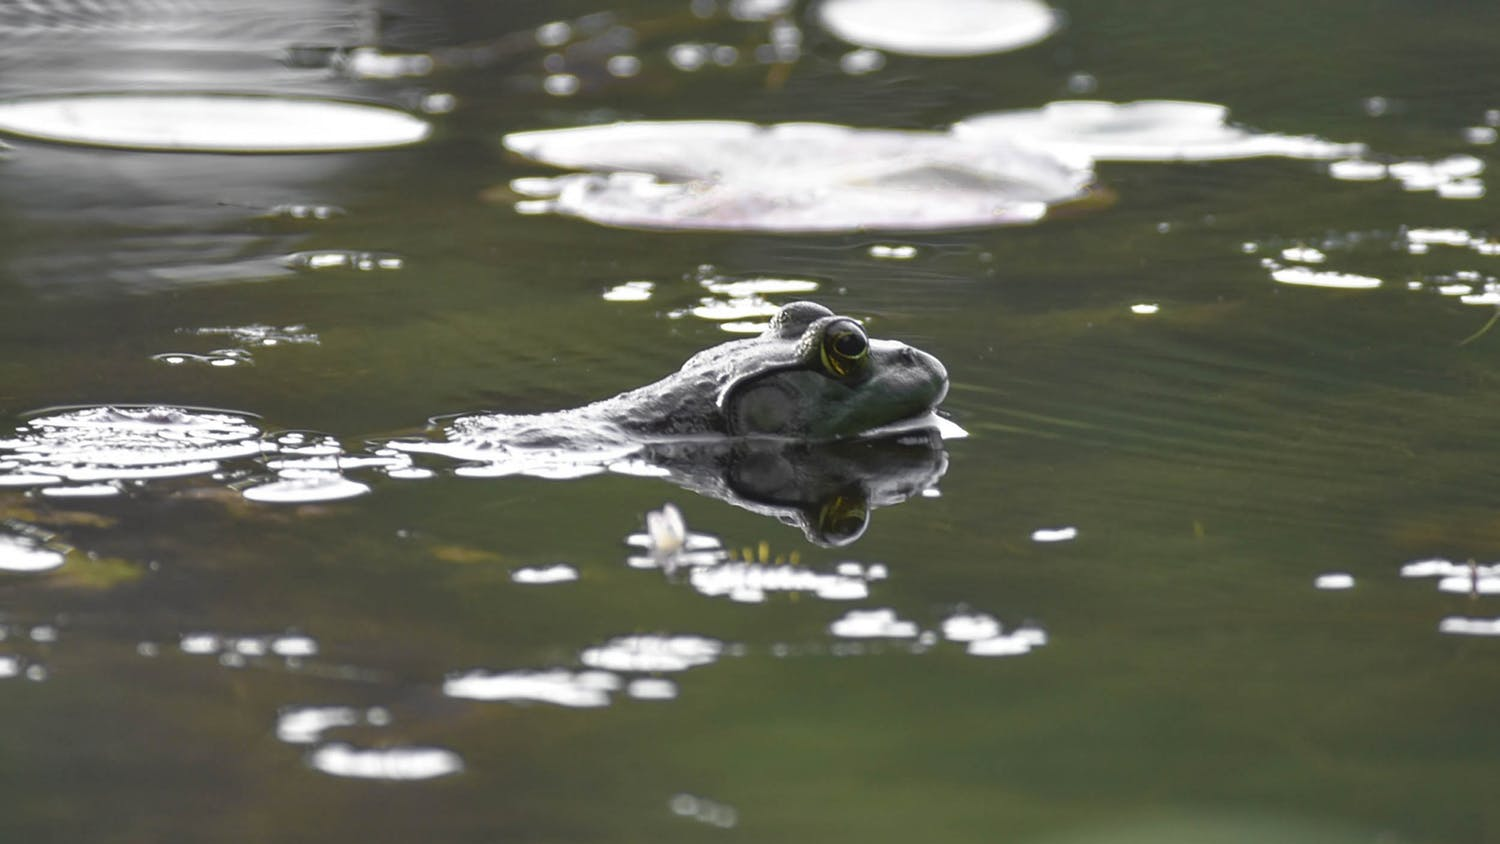 A bullfrog sits on the surface of the water of the Sesquicentennial state park pond. The park is home to many specifies of plants and animals.